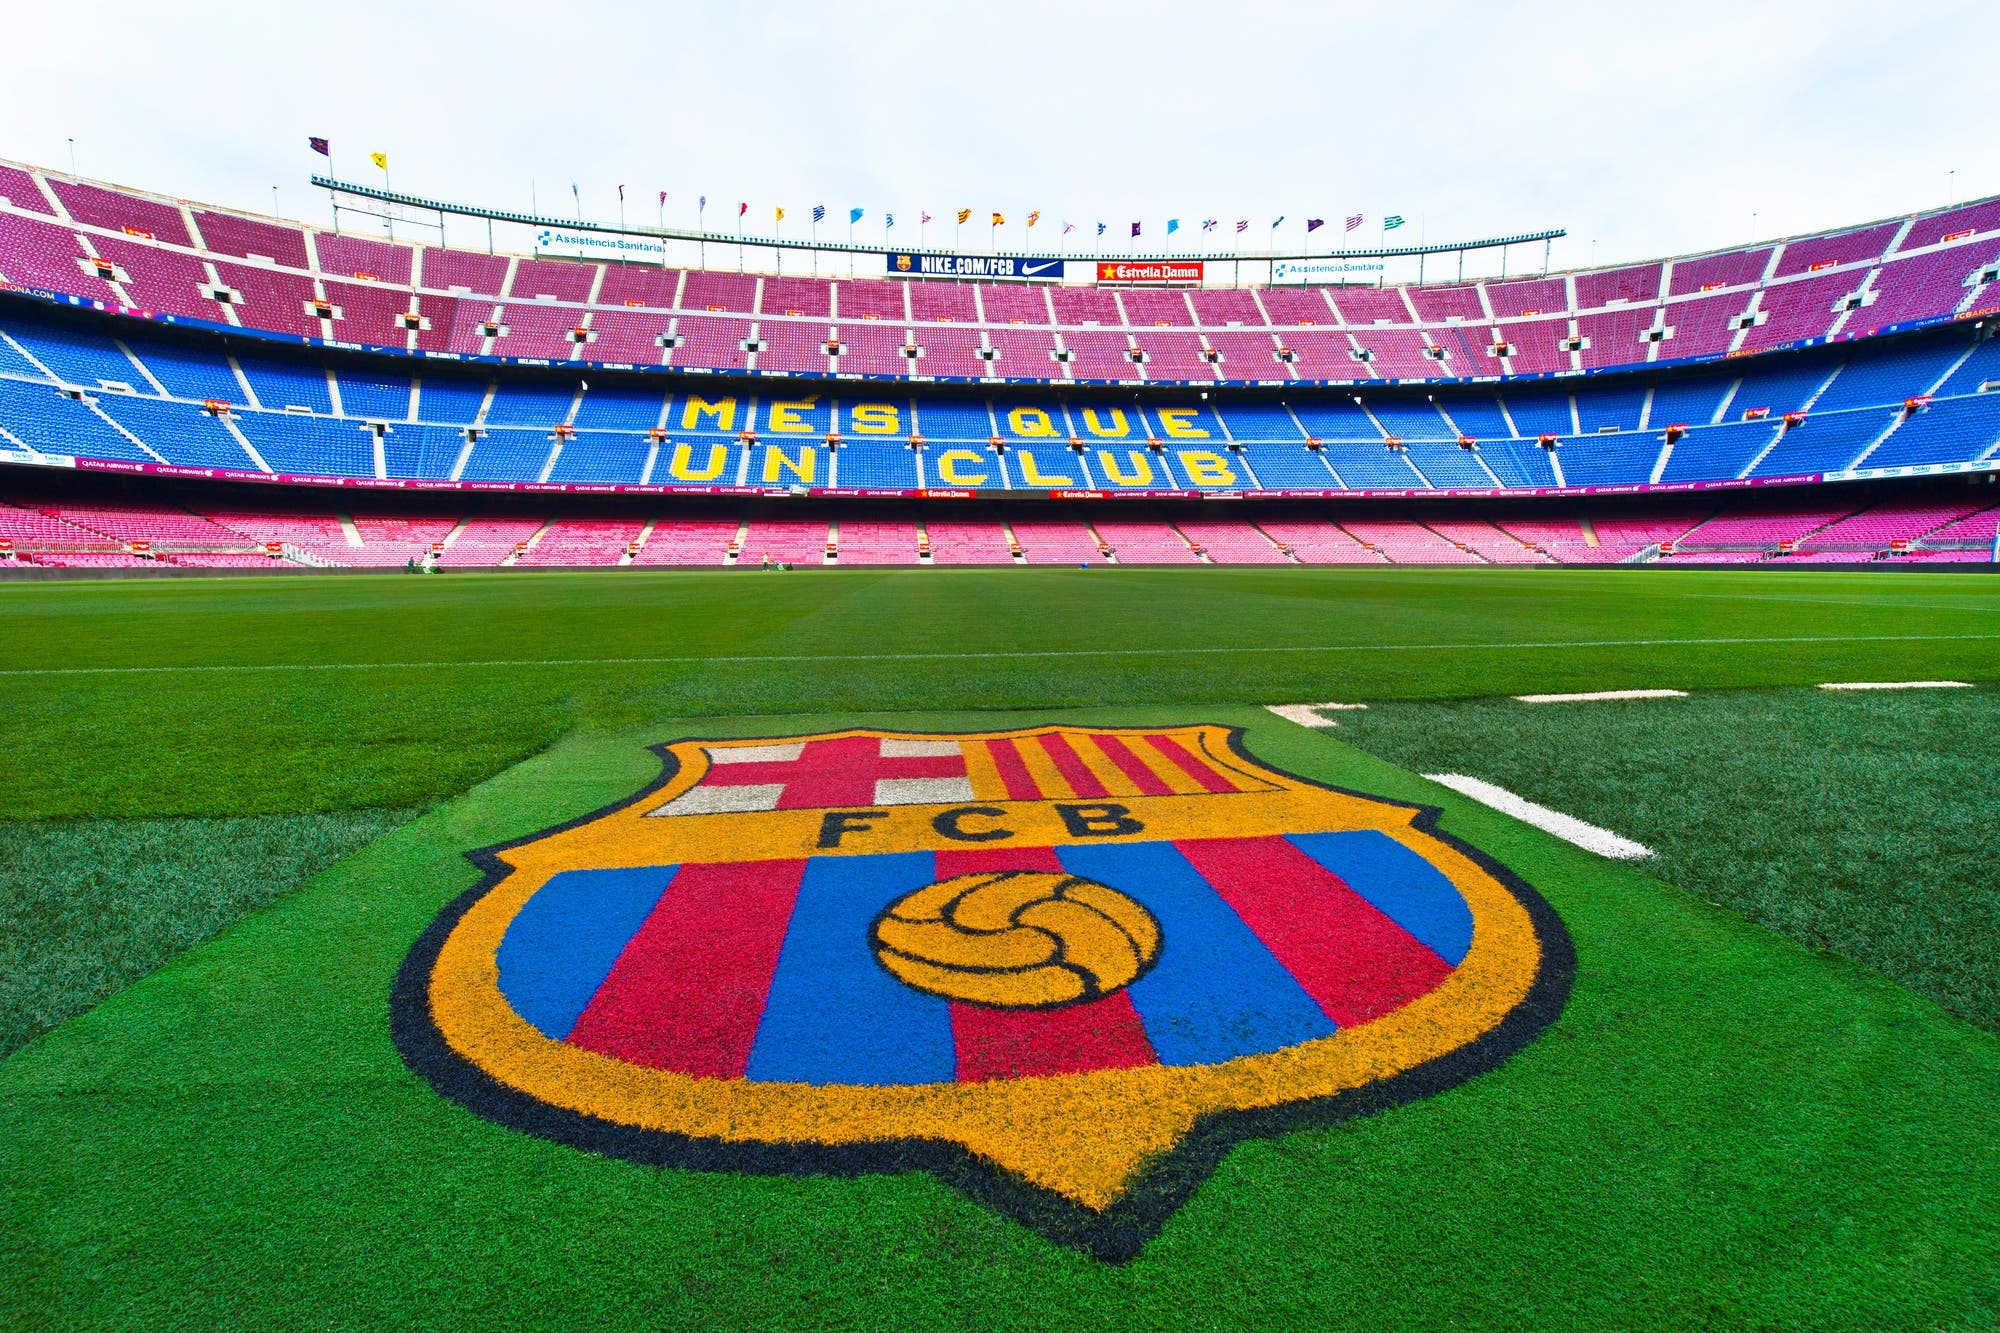 Barcelona stadium 2021: Camp Nou Barca Home Arena Name & Capacity!